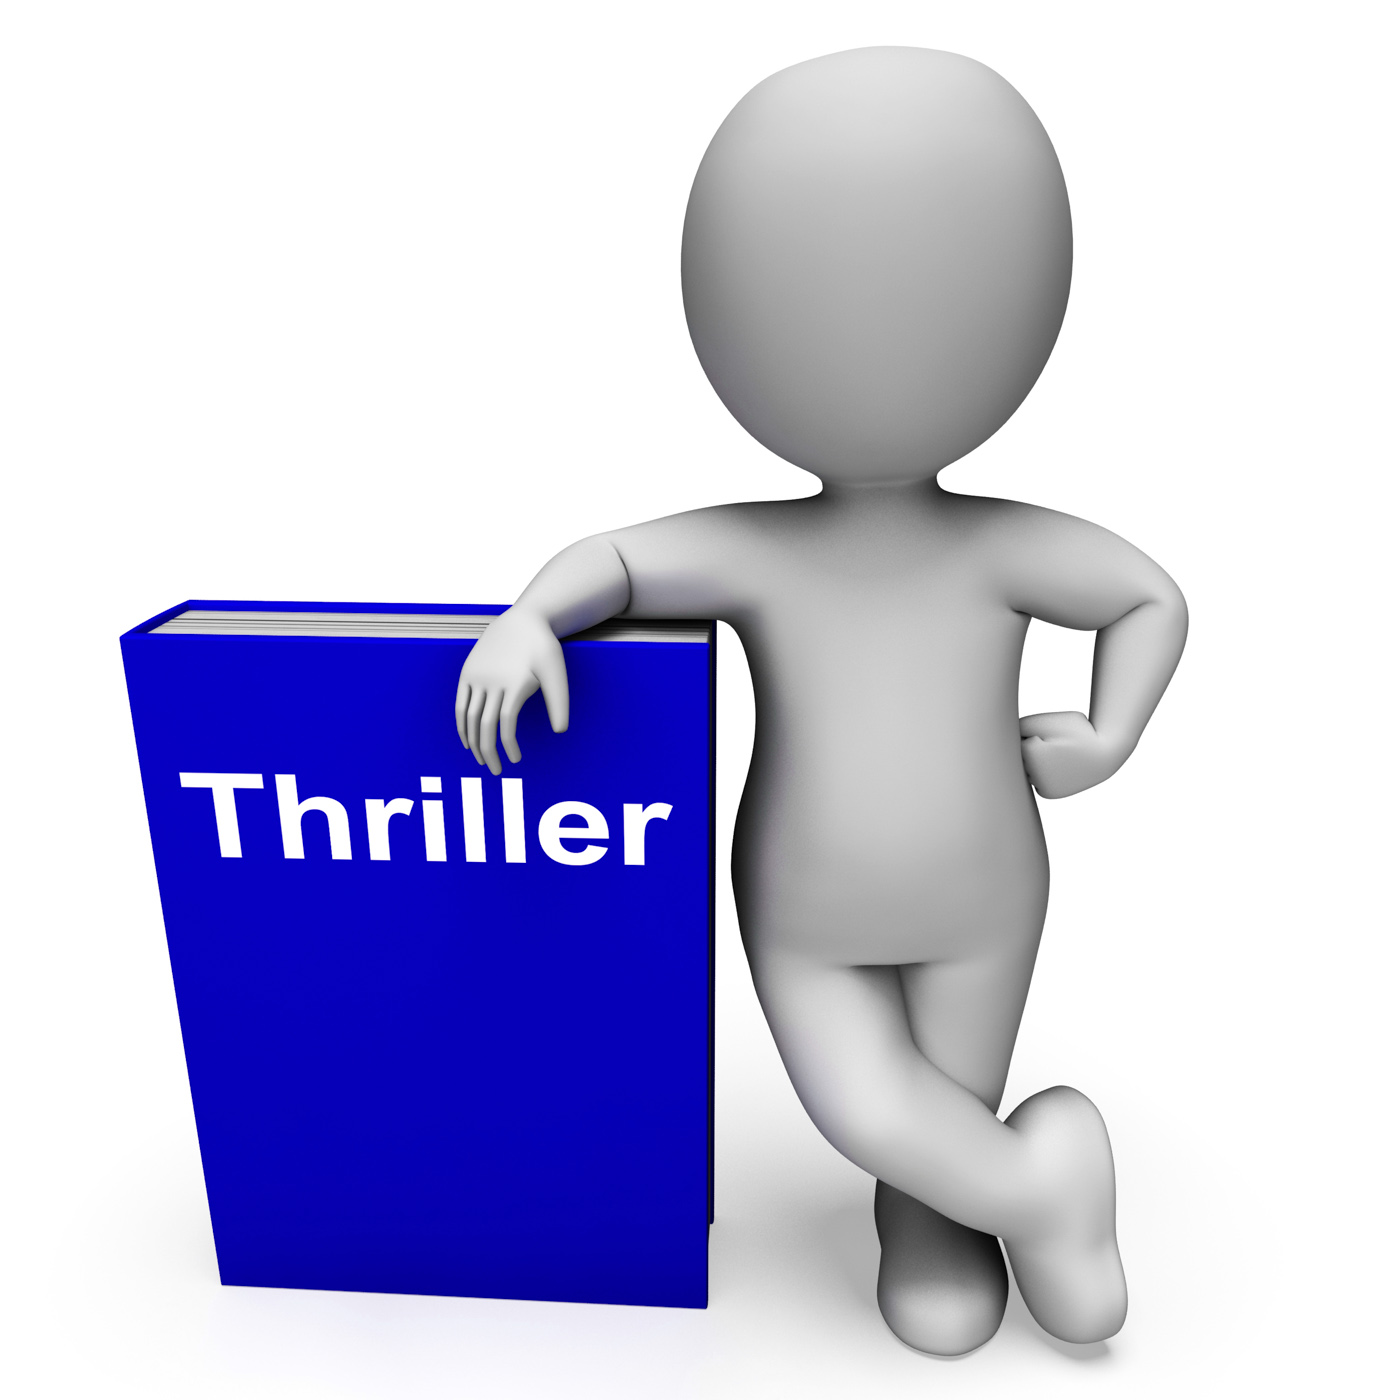 Thriller book and character shows books about action adventure mystery photo